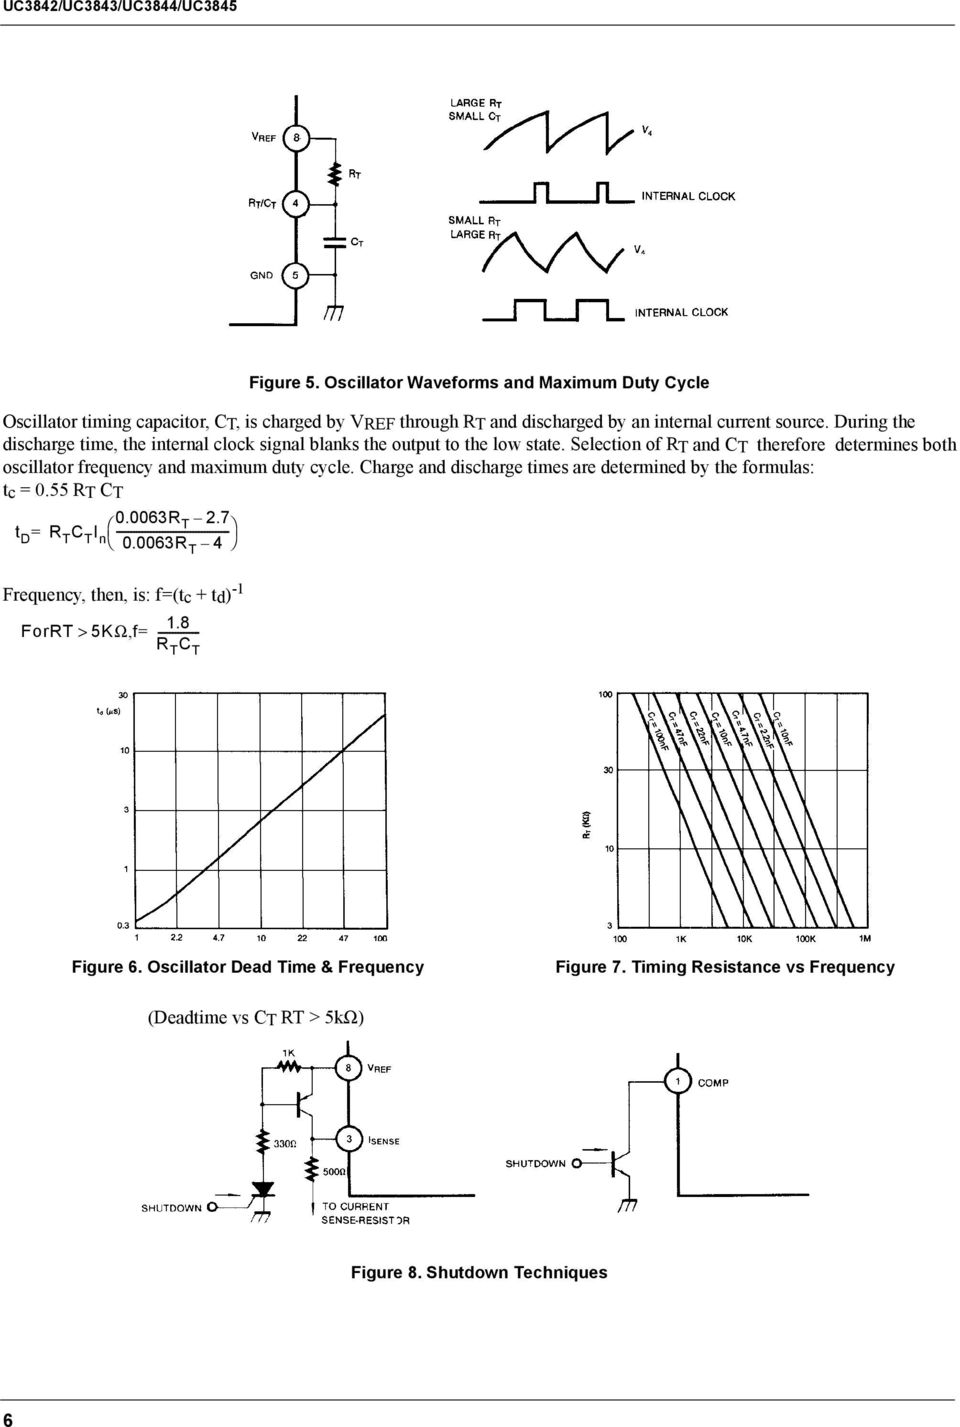 Uc3842 Uc3843 Uc3844 Uc Pdf Oscillator With Fixed Frequency And Variable Duty Cycle Circuit Charge Discharge Times Are Determined By The Formulas Tc 055 Rt Ct 00063